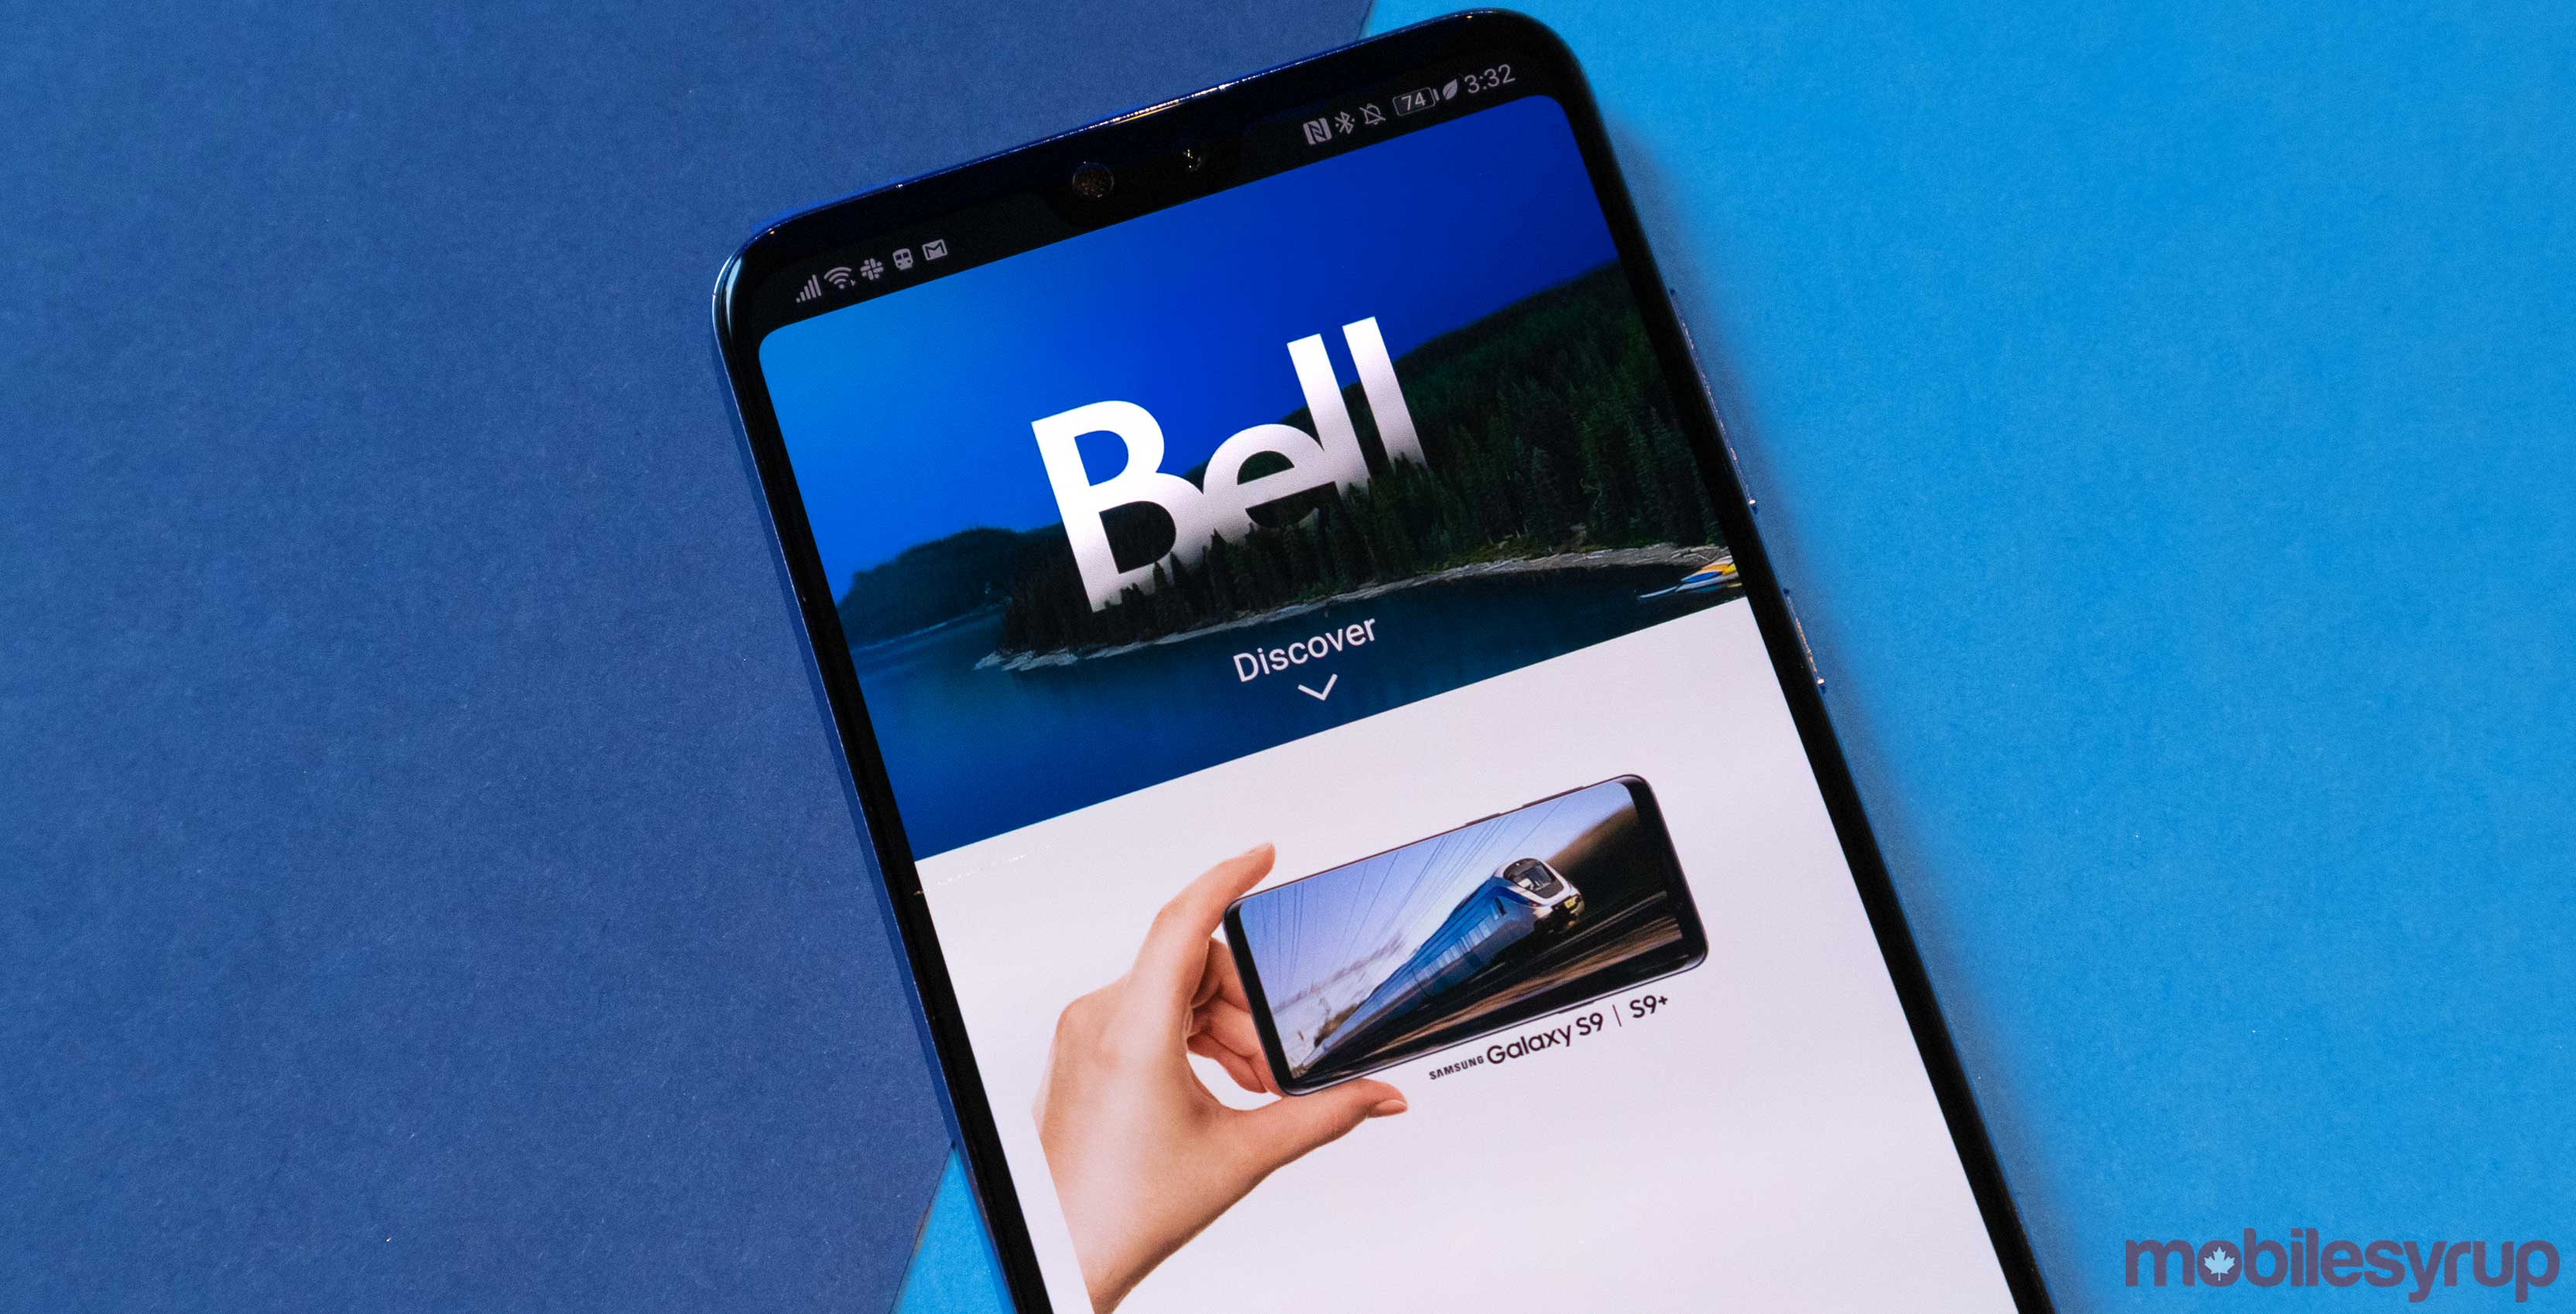 Bell claims fastest ISP in Canada for second year in a row